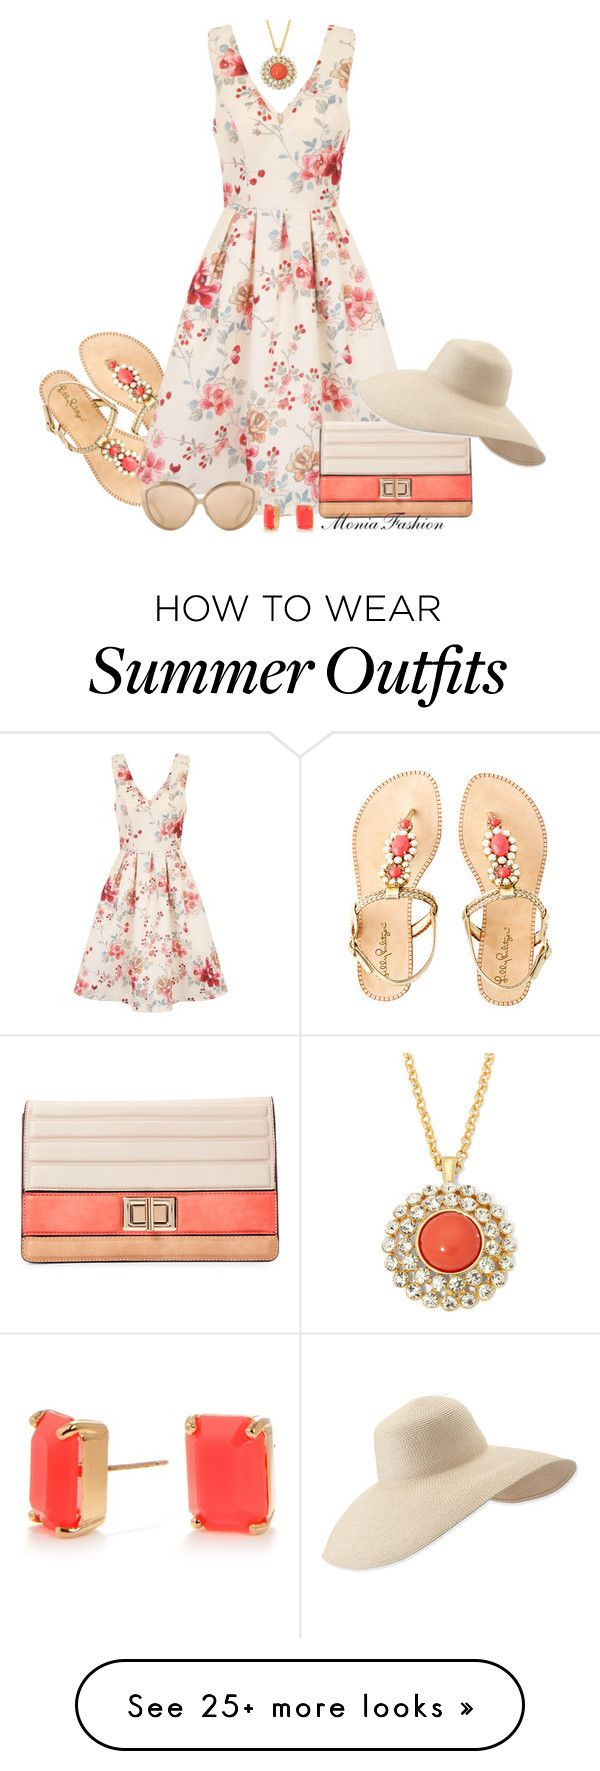 """""""summer 2016"""" by monia-fashion on Polyvore featuring Lilly Pulitzer, Chi Chi, Melie Bianco, Eric Javits, Linda Farrow, Kate Spade and Monet"""